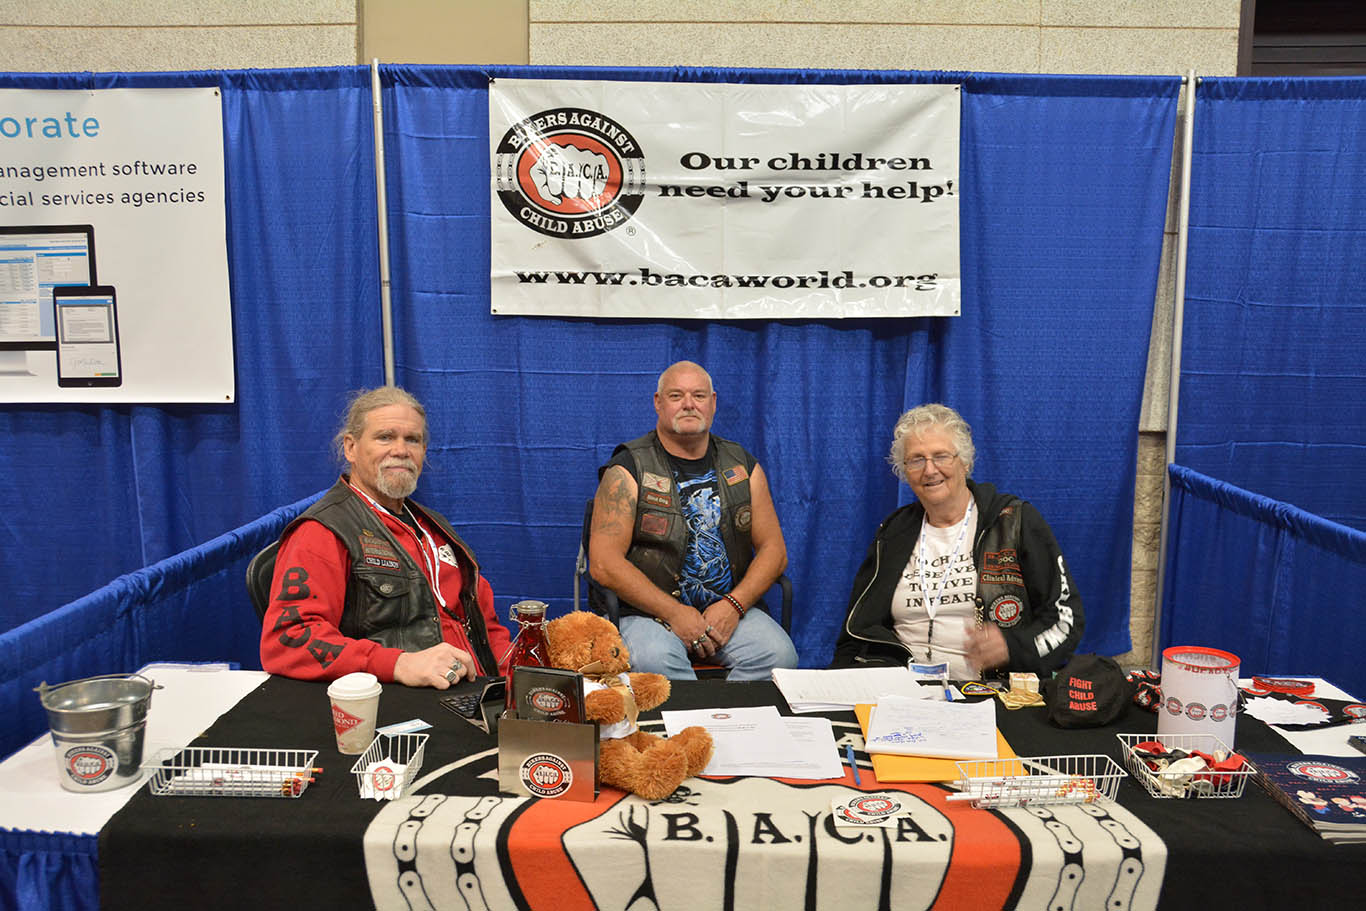 Bikers Against Child Abuse Exhibitor